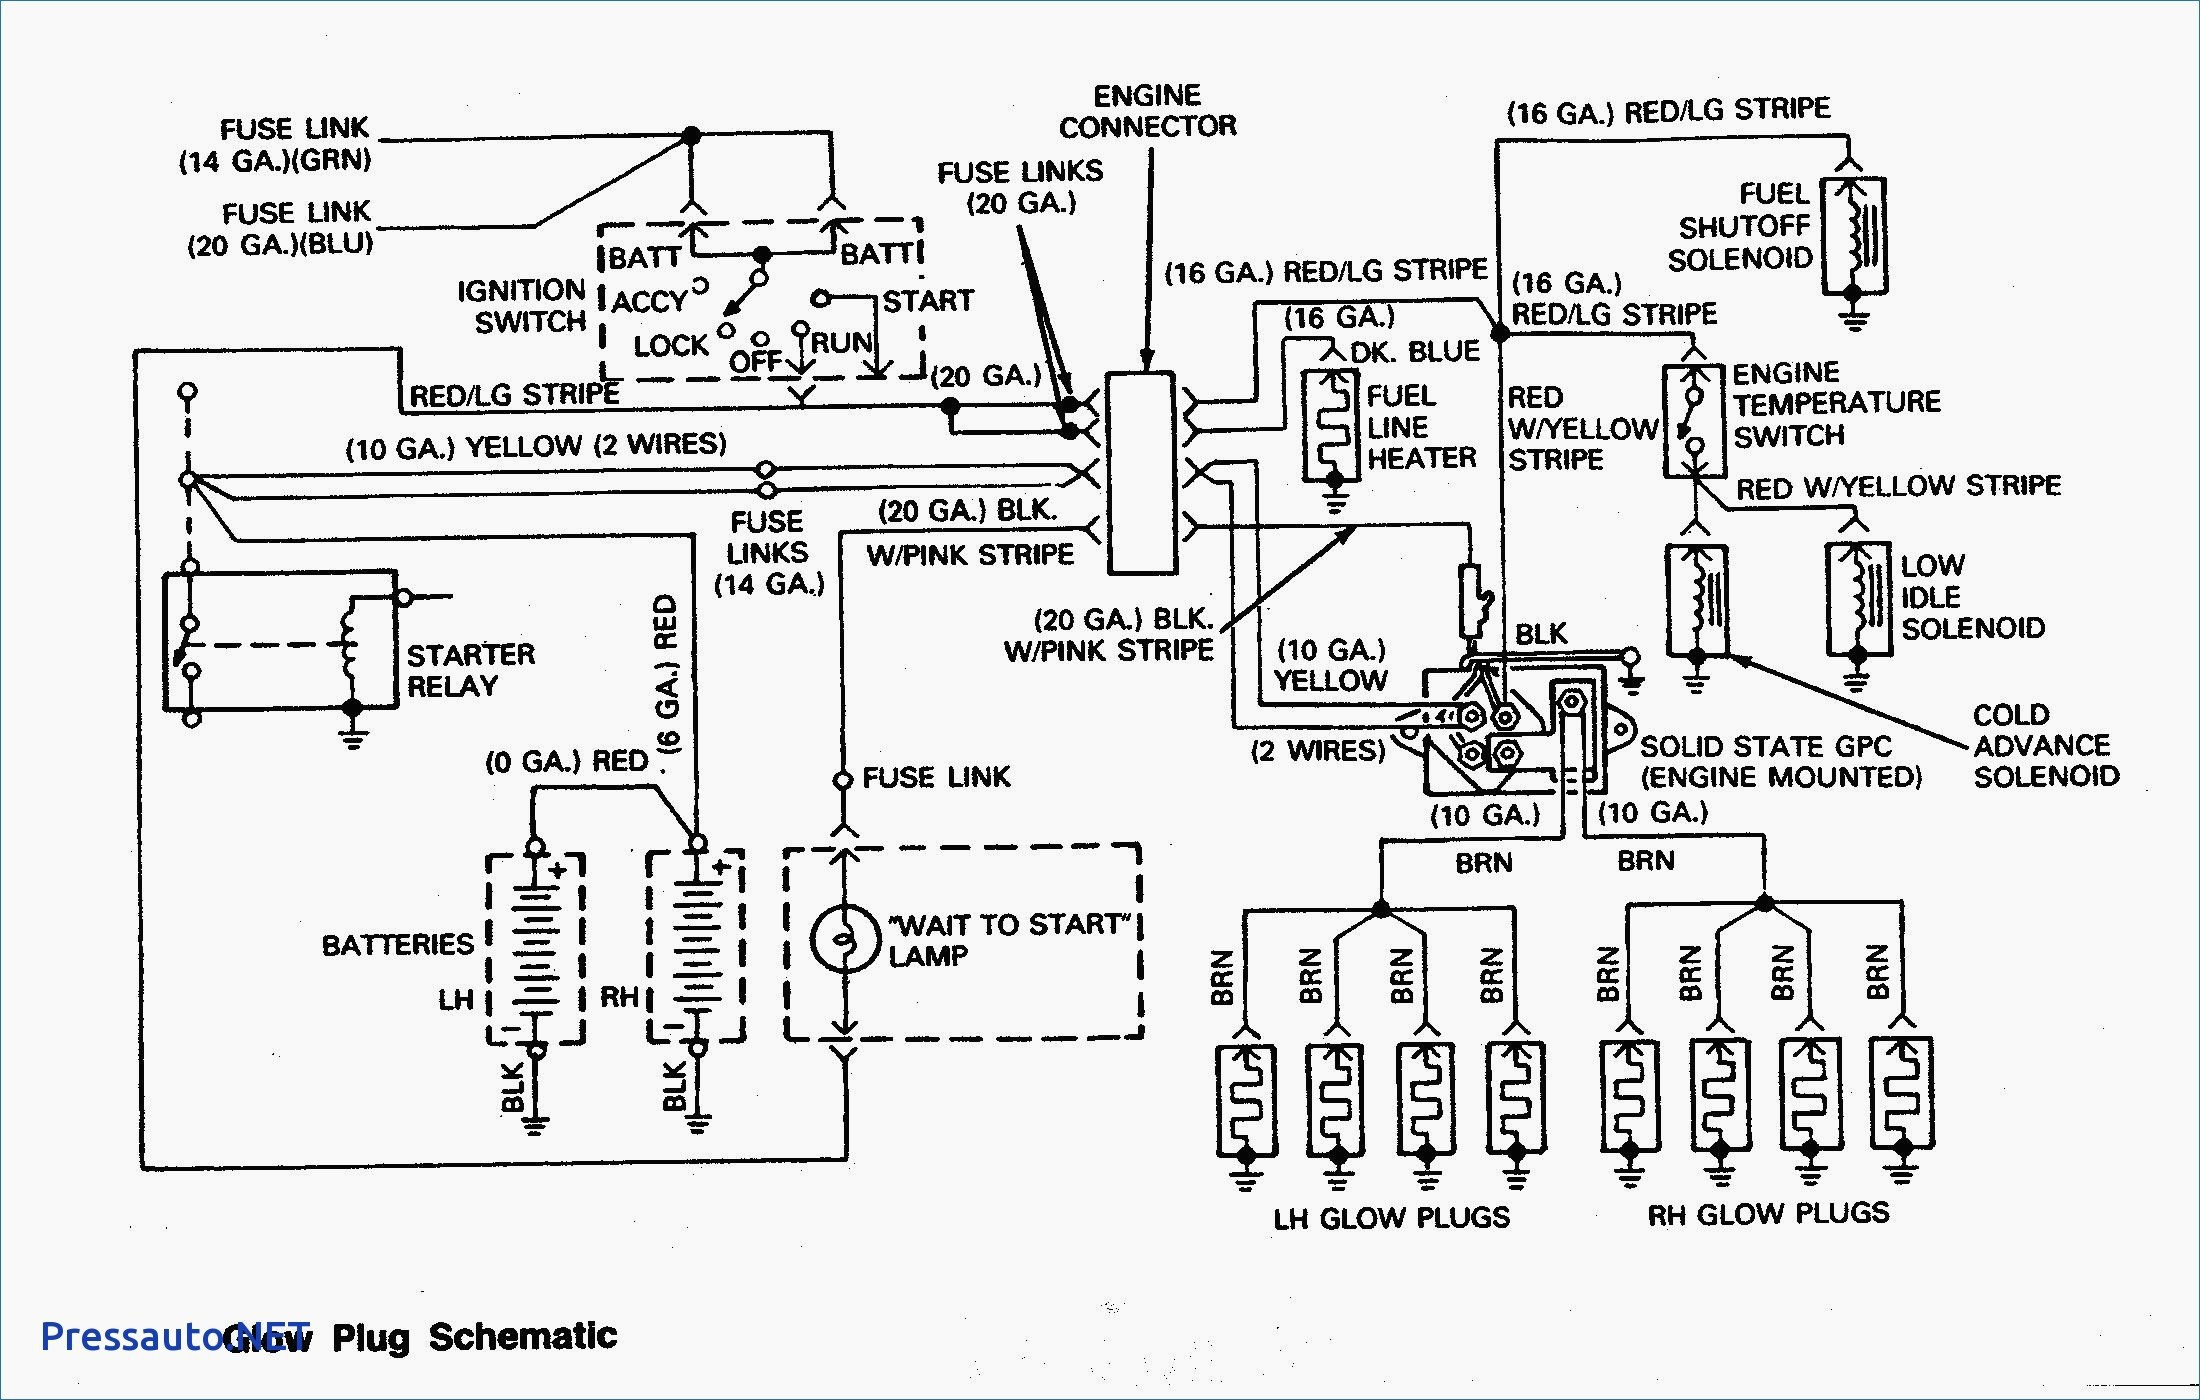 duramax lb7 engine electrical diagram wiring diagram fuse box u2022 rh friendsoffido co